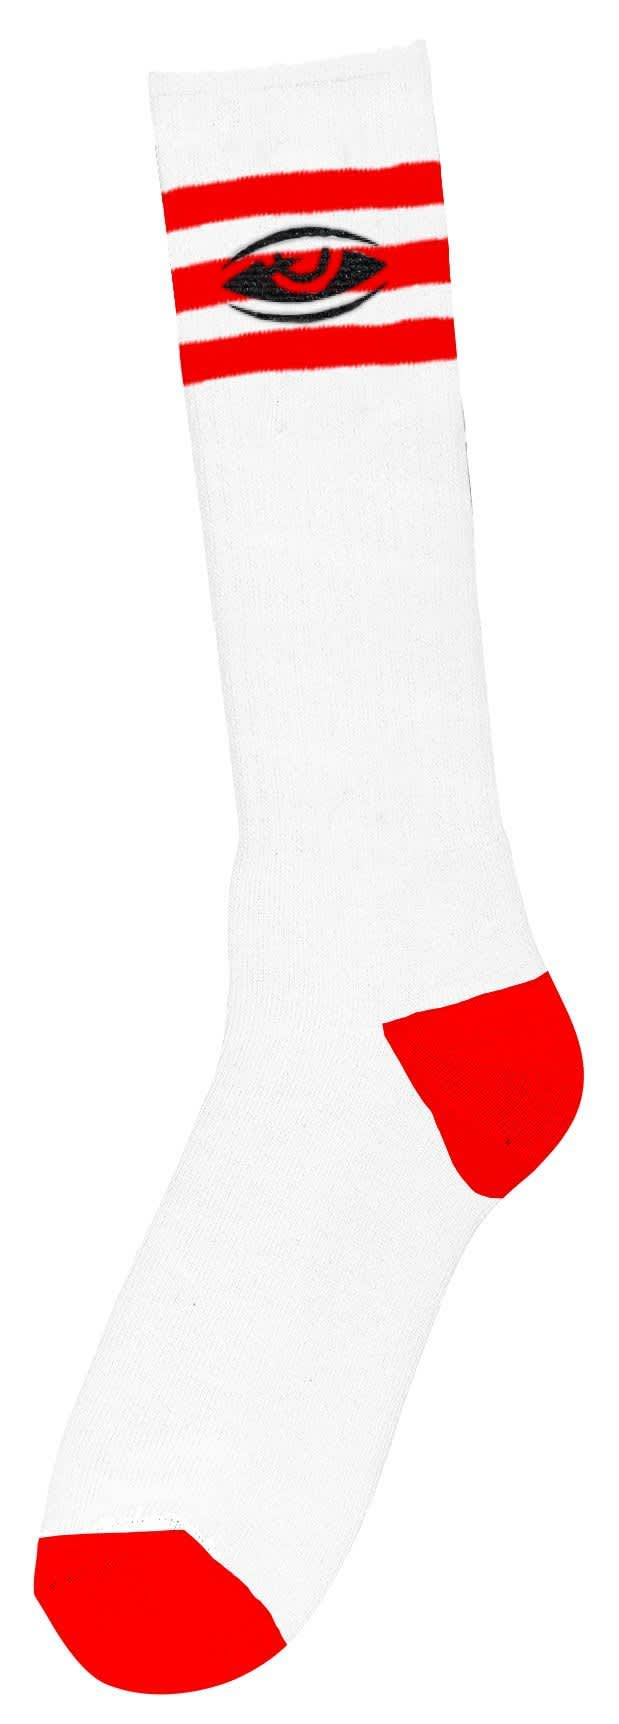 Toy Machine Watching Embroidered Socks Red   Socks by Toy Machine 1